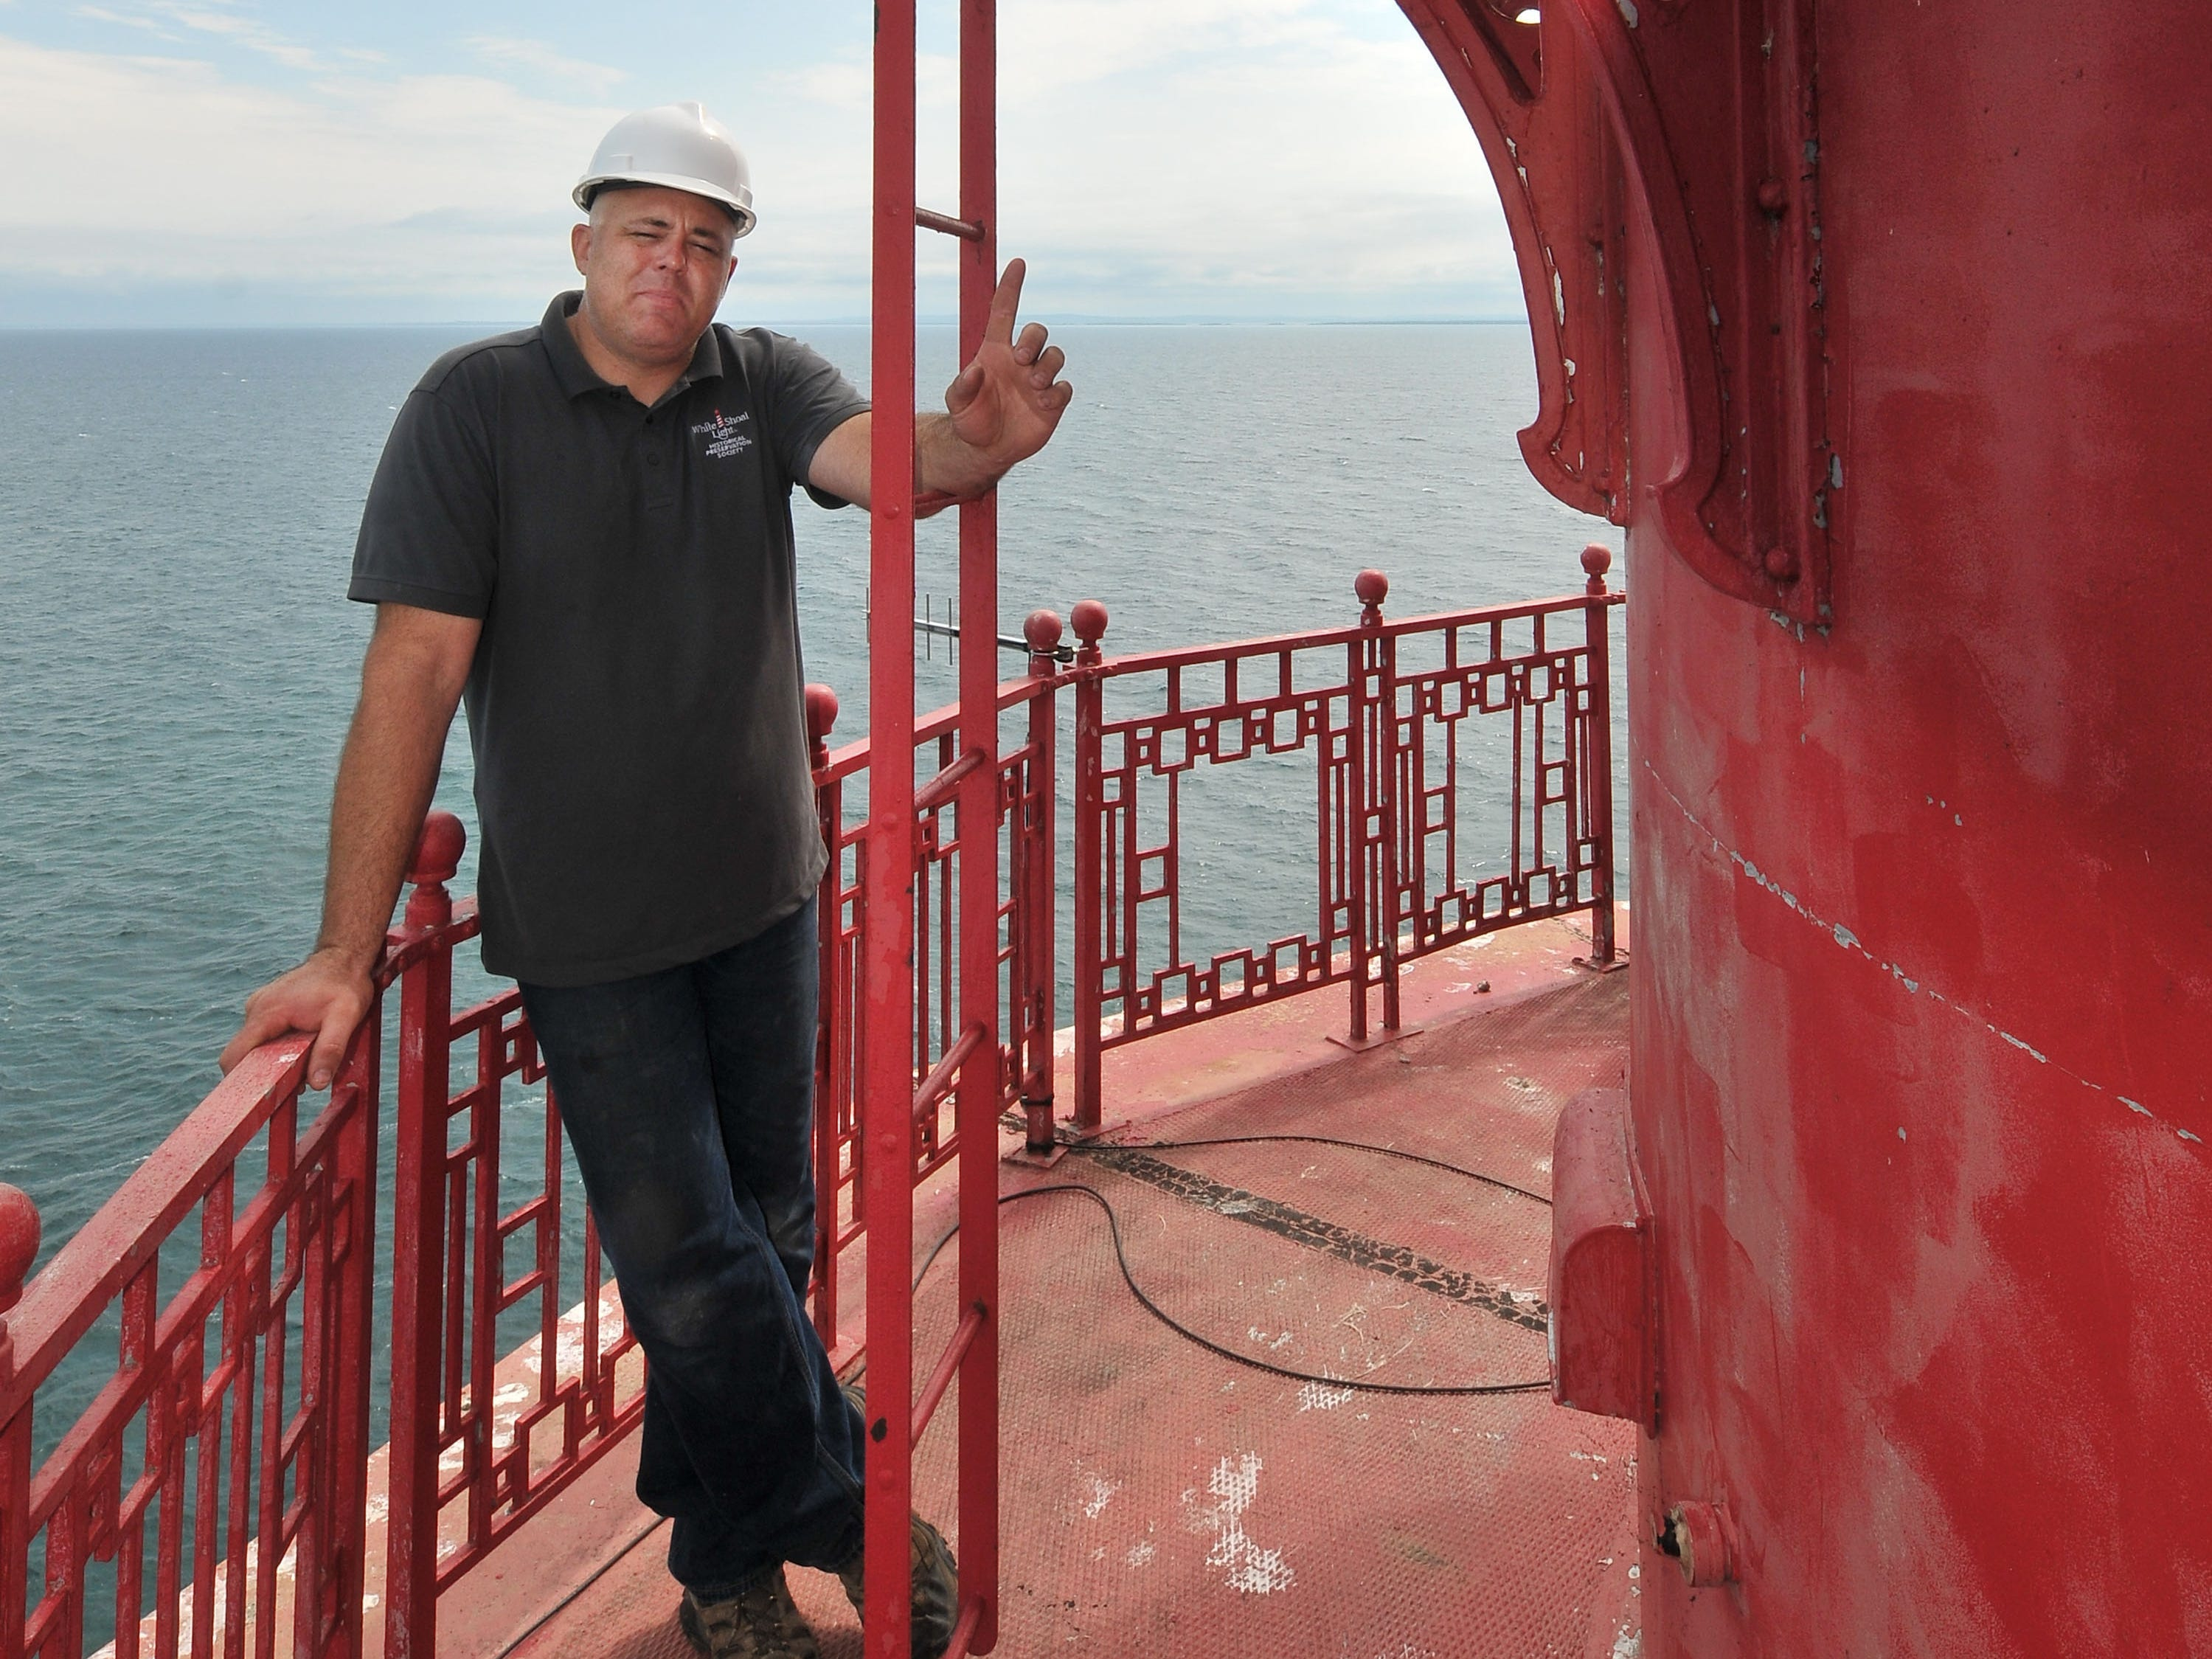 Brent Tompkins of Traverse City stands on the catwalk of the White Shoal Lighthouse, Sunday, Sept. 2, 2018 as he explains the unique aluminum trim on the light tower. The light is the only one on the Great Lakes that used aluminum, all others had cast iron.